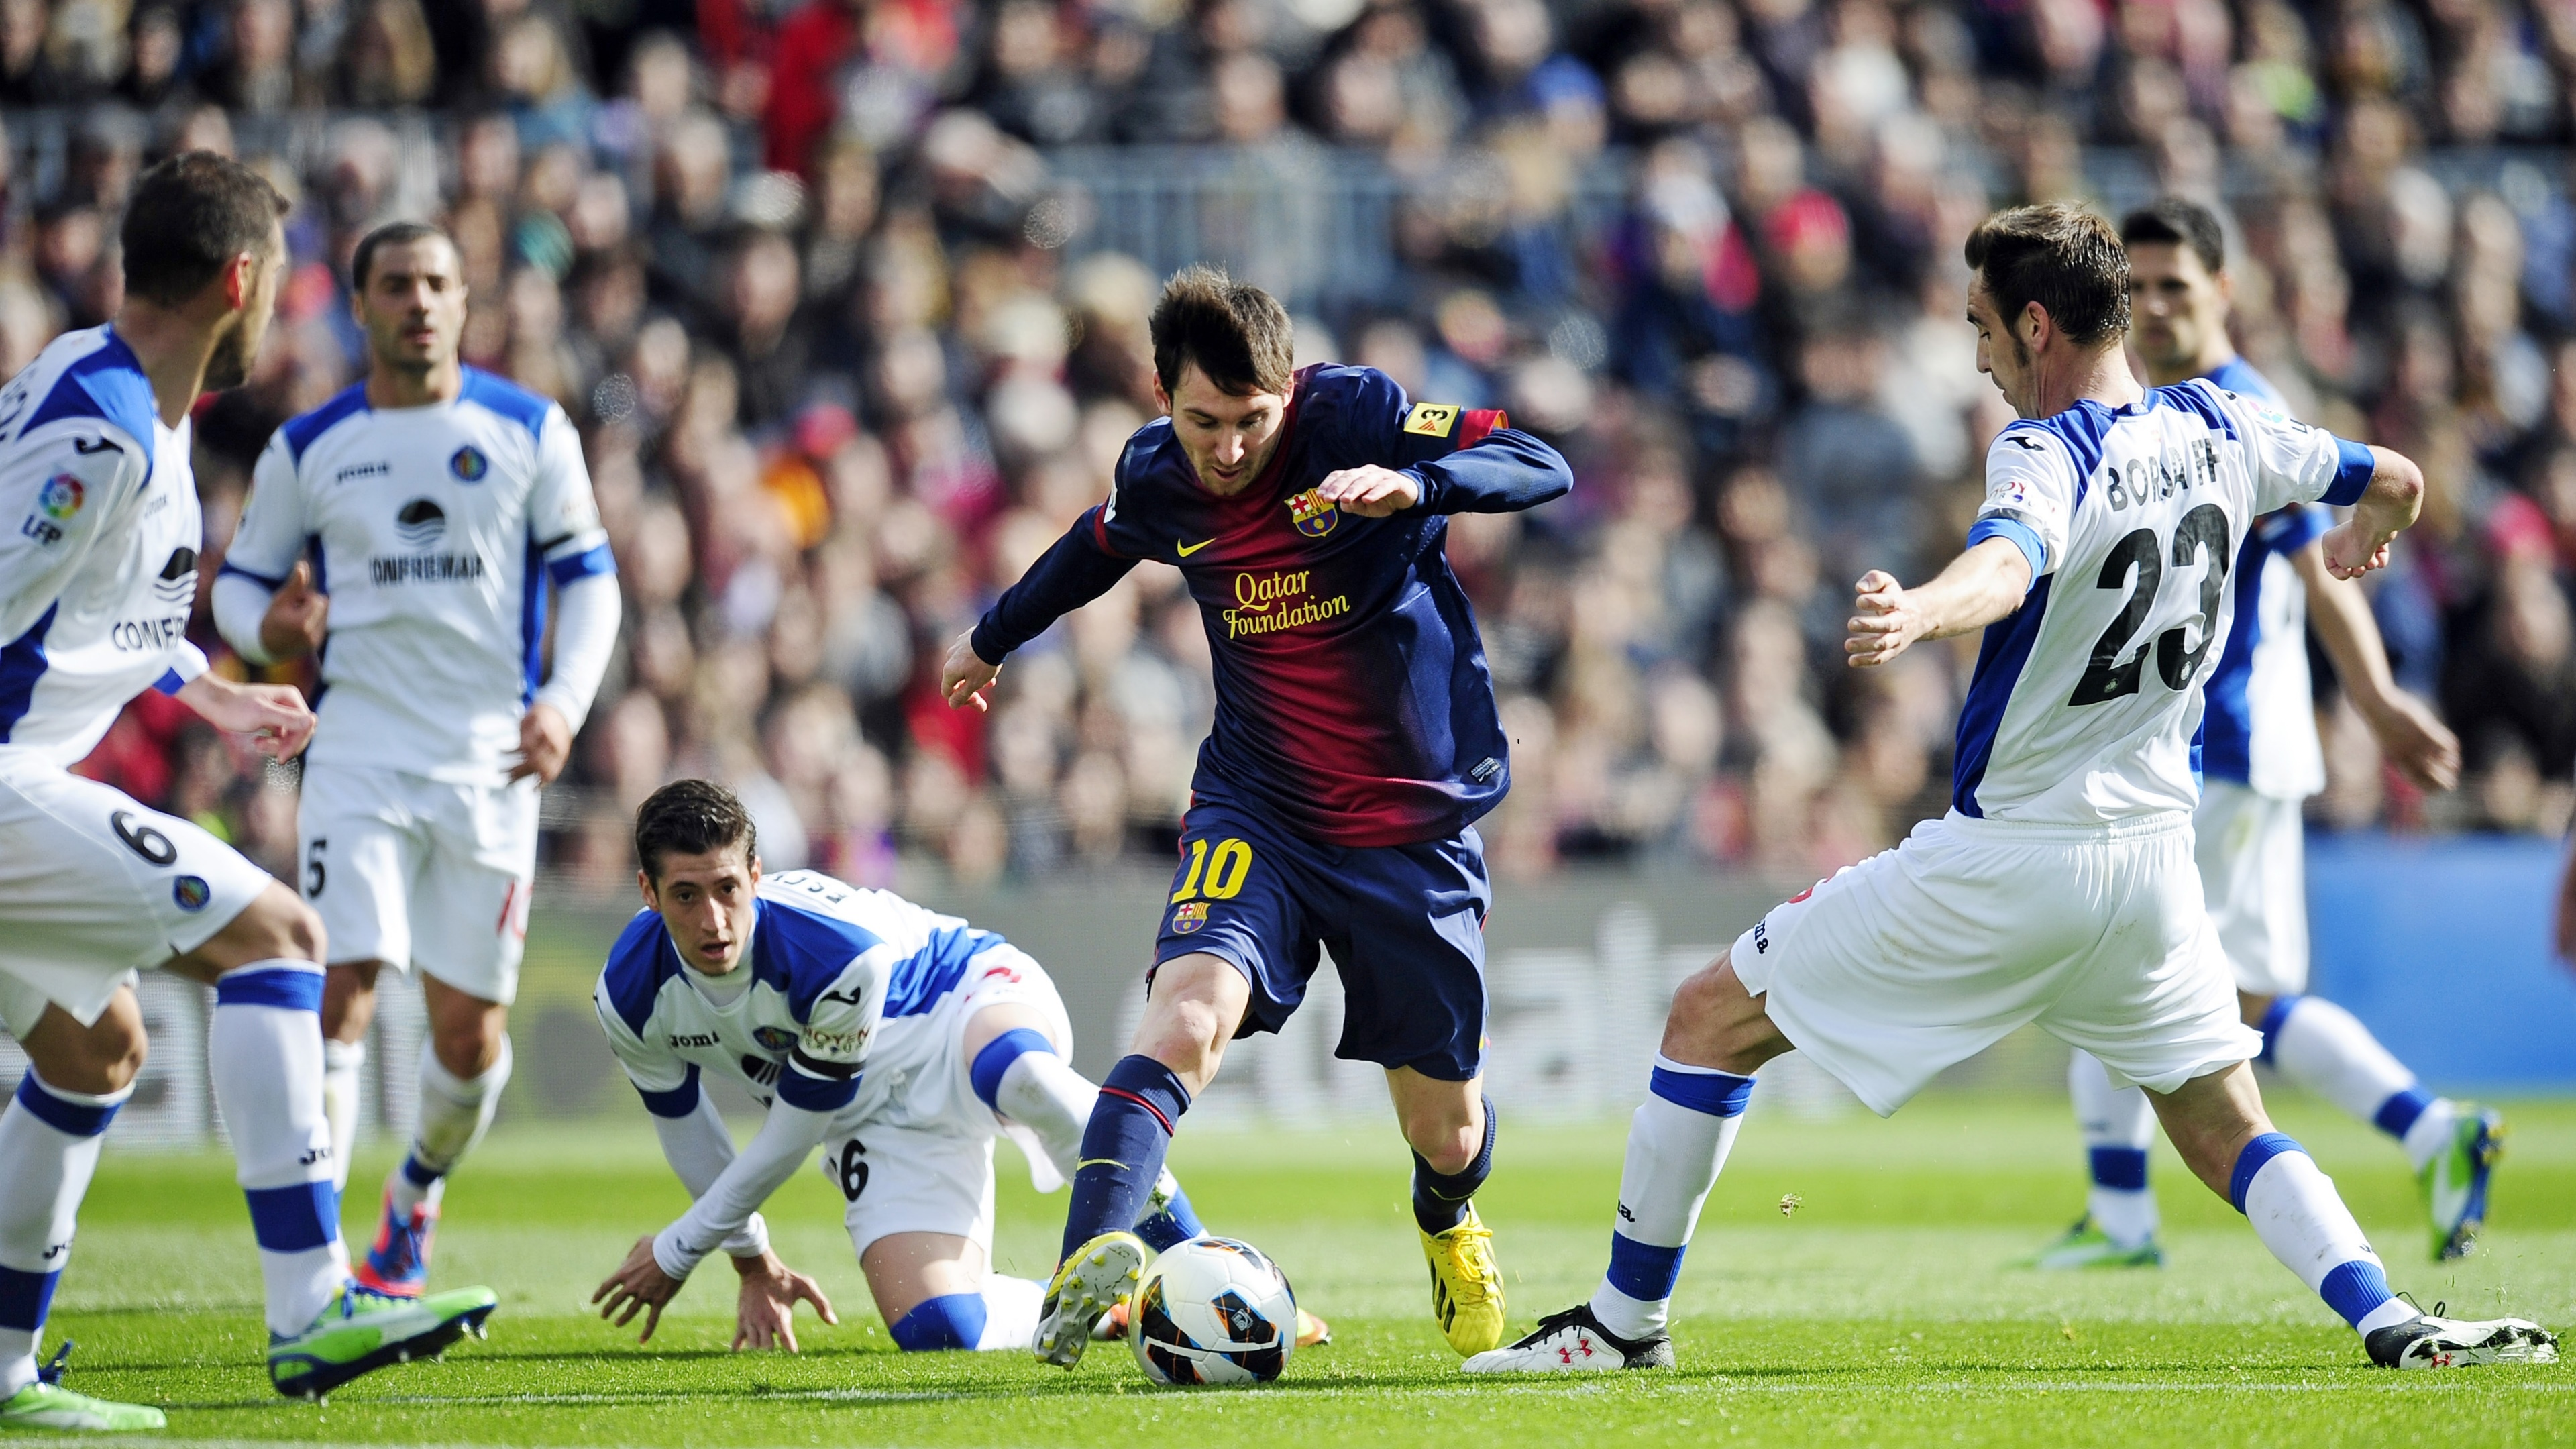 Desktop Lionel Messi Kick Football Hd Player Free Background Mobile Download Wallpaper Photos